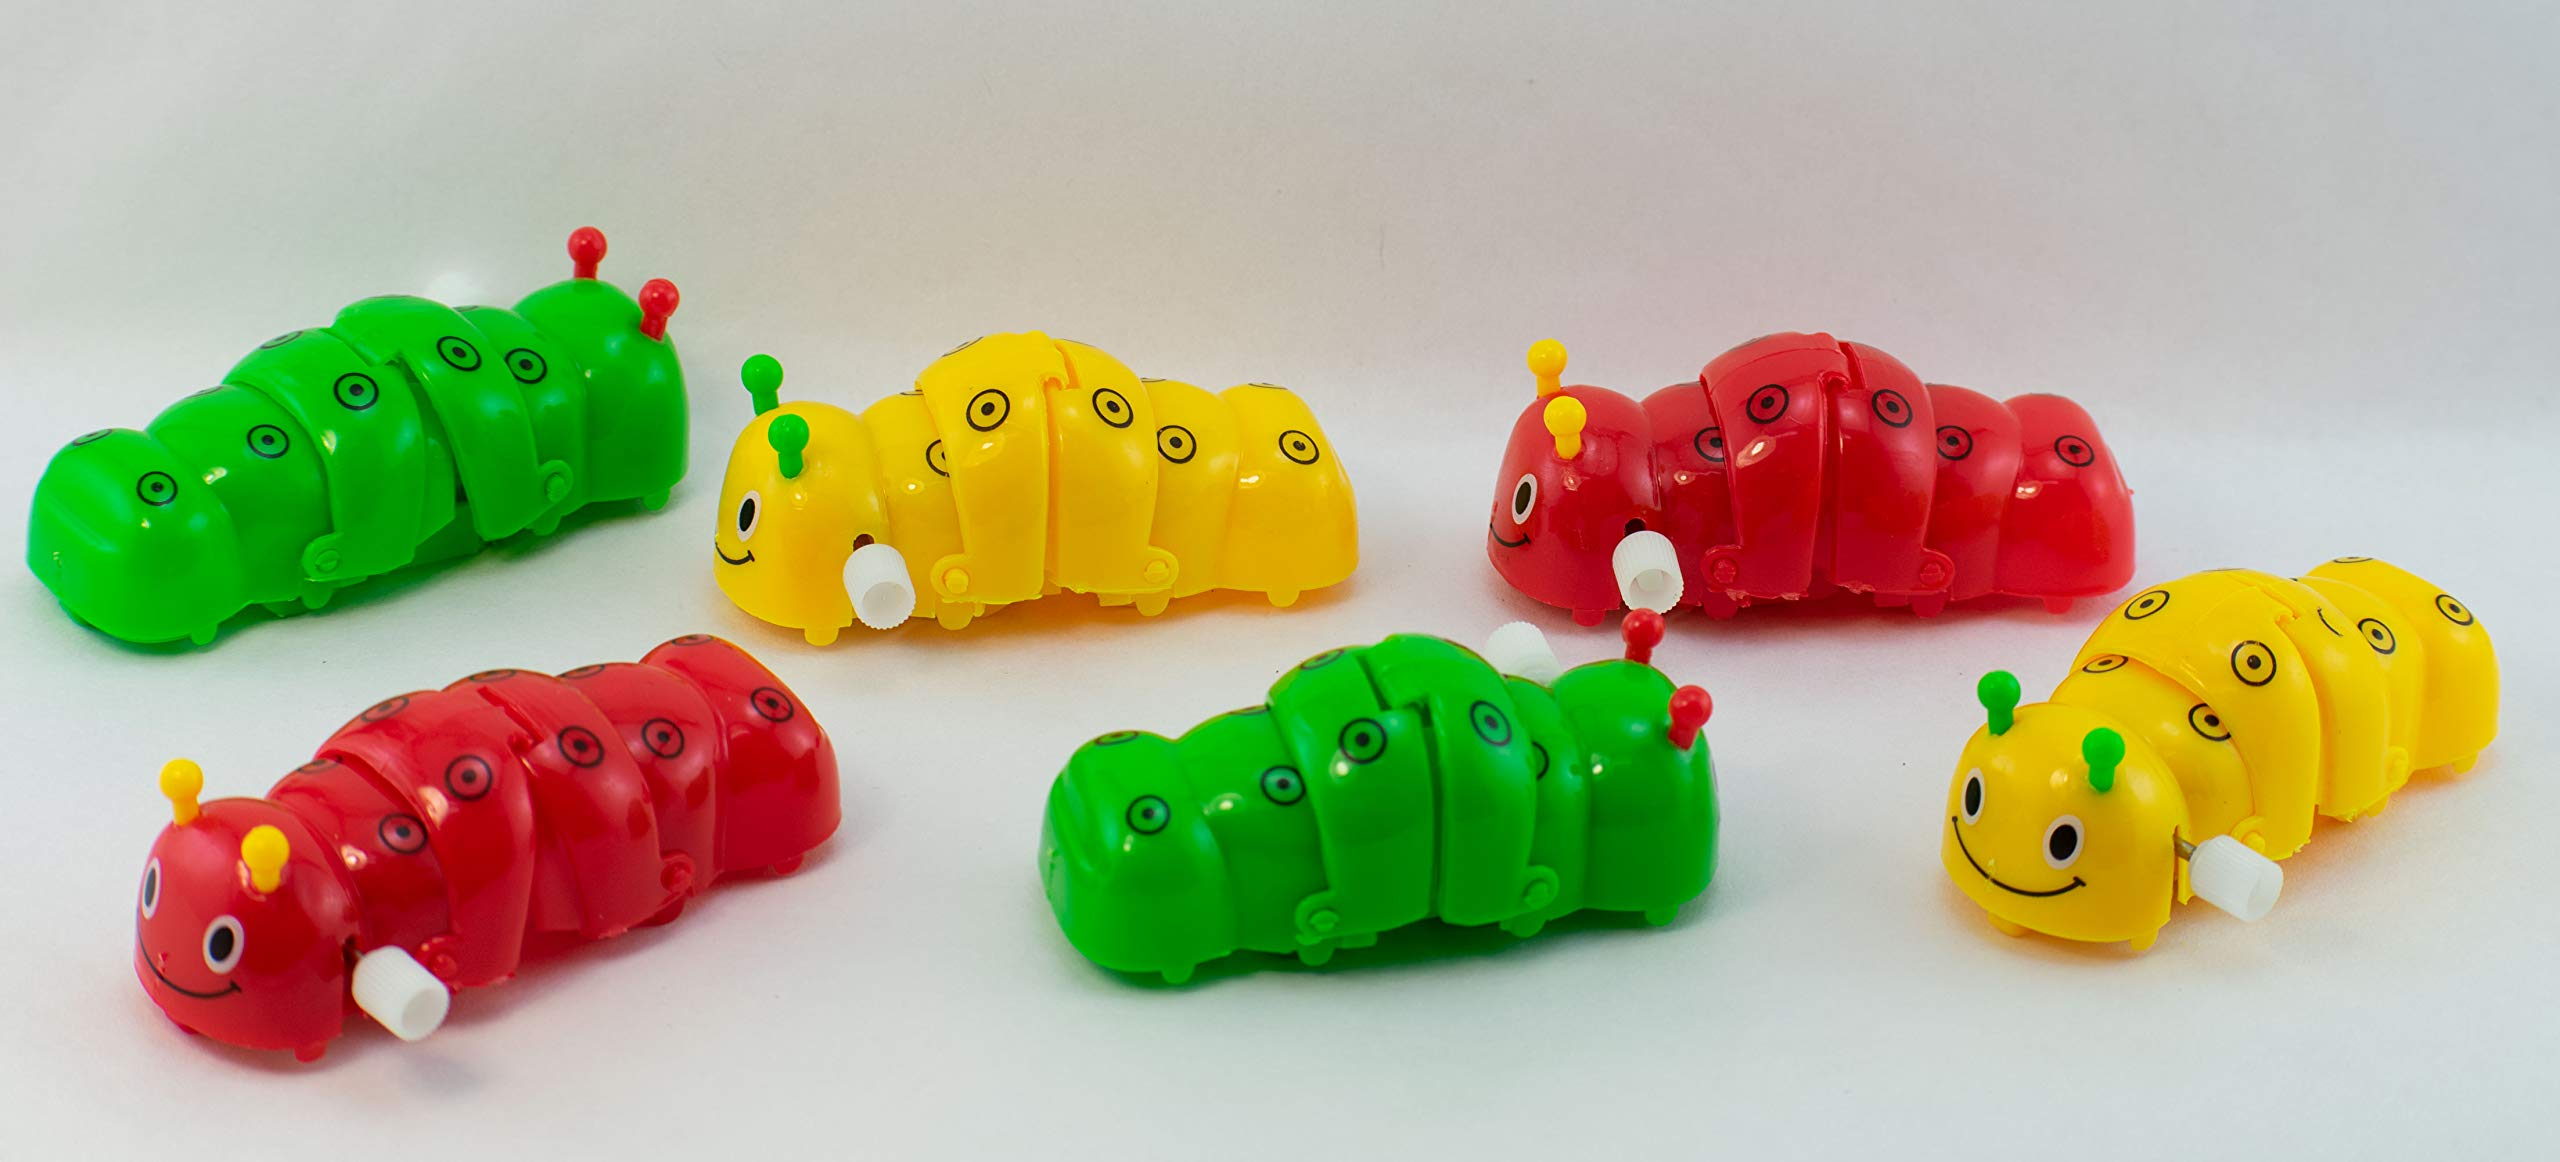 Giggle Time Wind-Up Caterpillar Assortment - (24) Pieces - Assorted Bright Colors - for Kids, Boys and Girls, Party Favors, Pinata Stuffers, Children's Gift Bags, Carnival Prizes